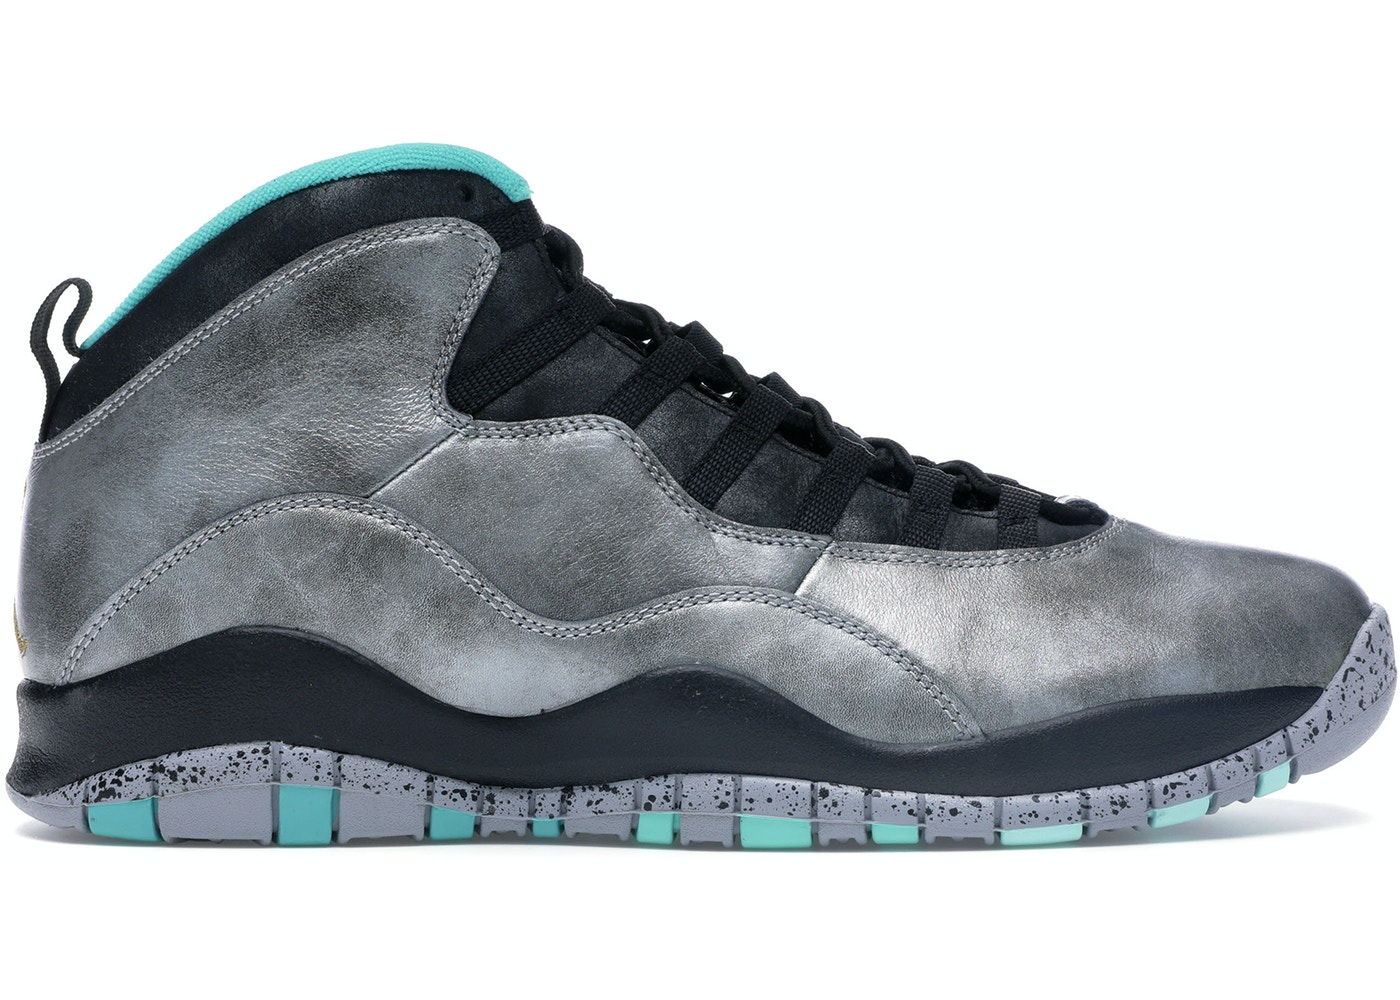 42e4a9f89313 Jordan 10 Retro Lady of Liberty - 705178-045